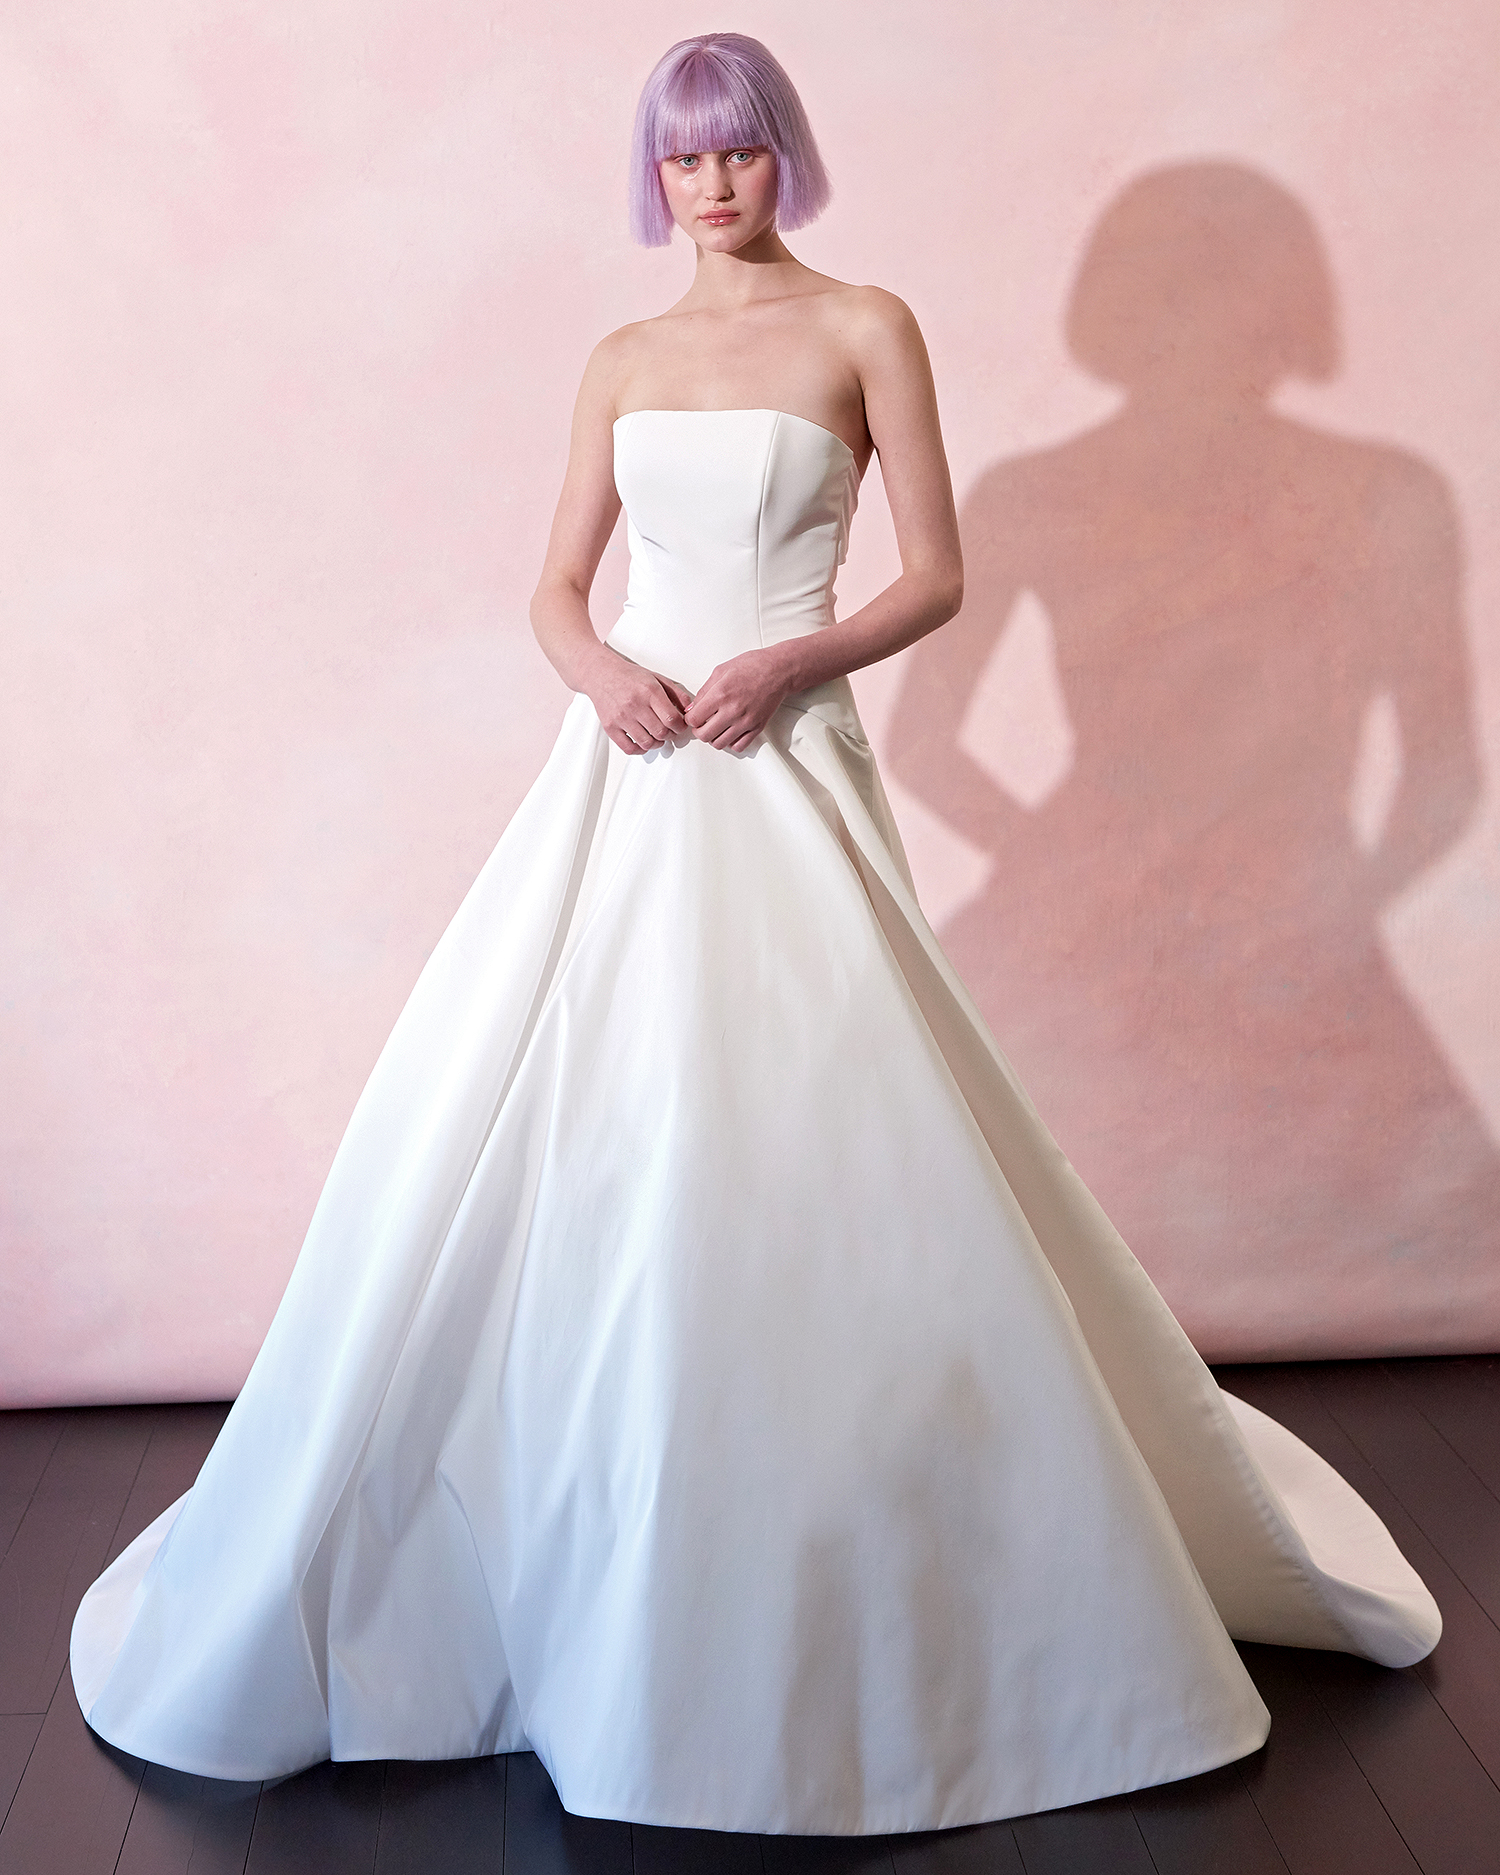 isabelle armstrong wedding dress spring 2019 strapless ball gown